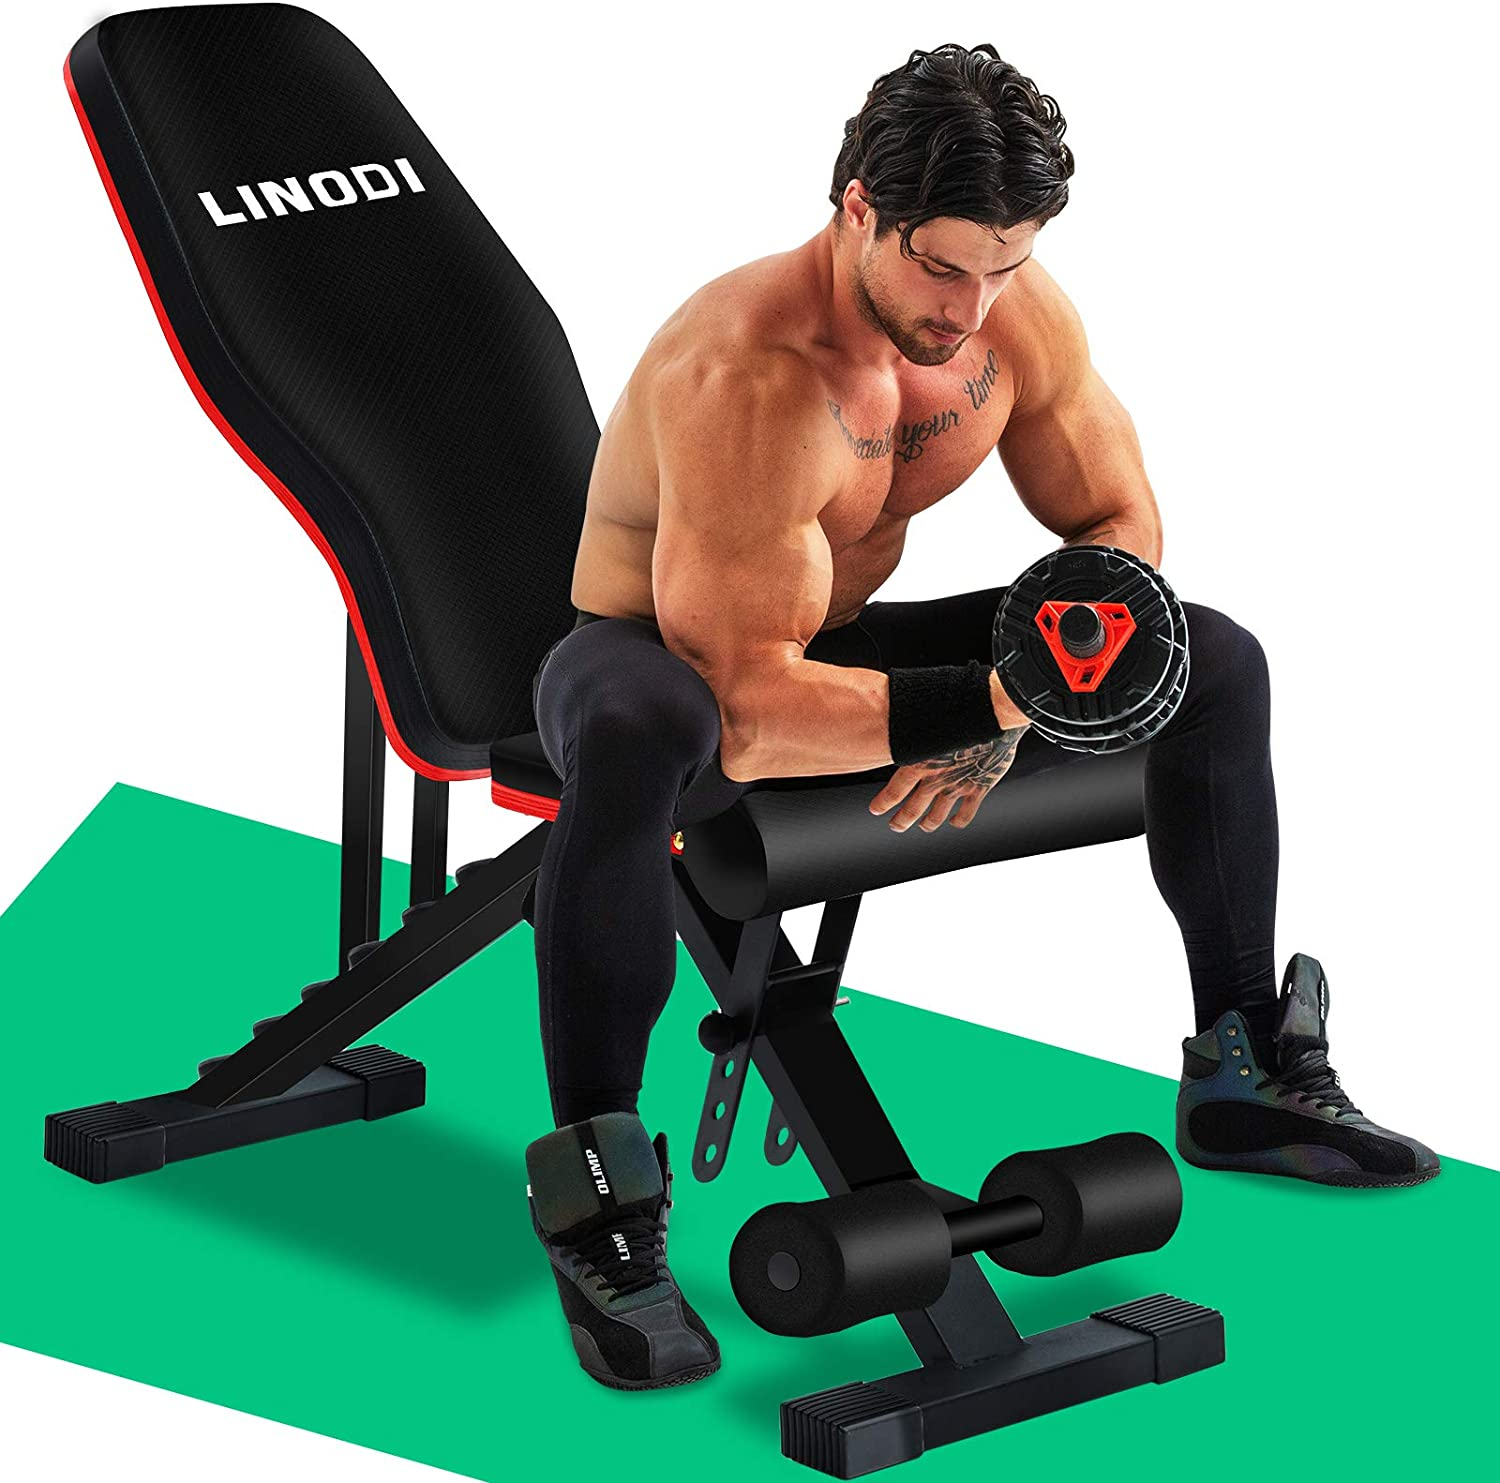 LINODI Adjustable Weight Bench, Workout Bench for Home Gym, Multi-Purpose Strength Training Benches, Foldable Incline Decline Gym Bench for Full Body Workout